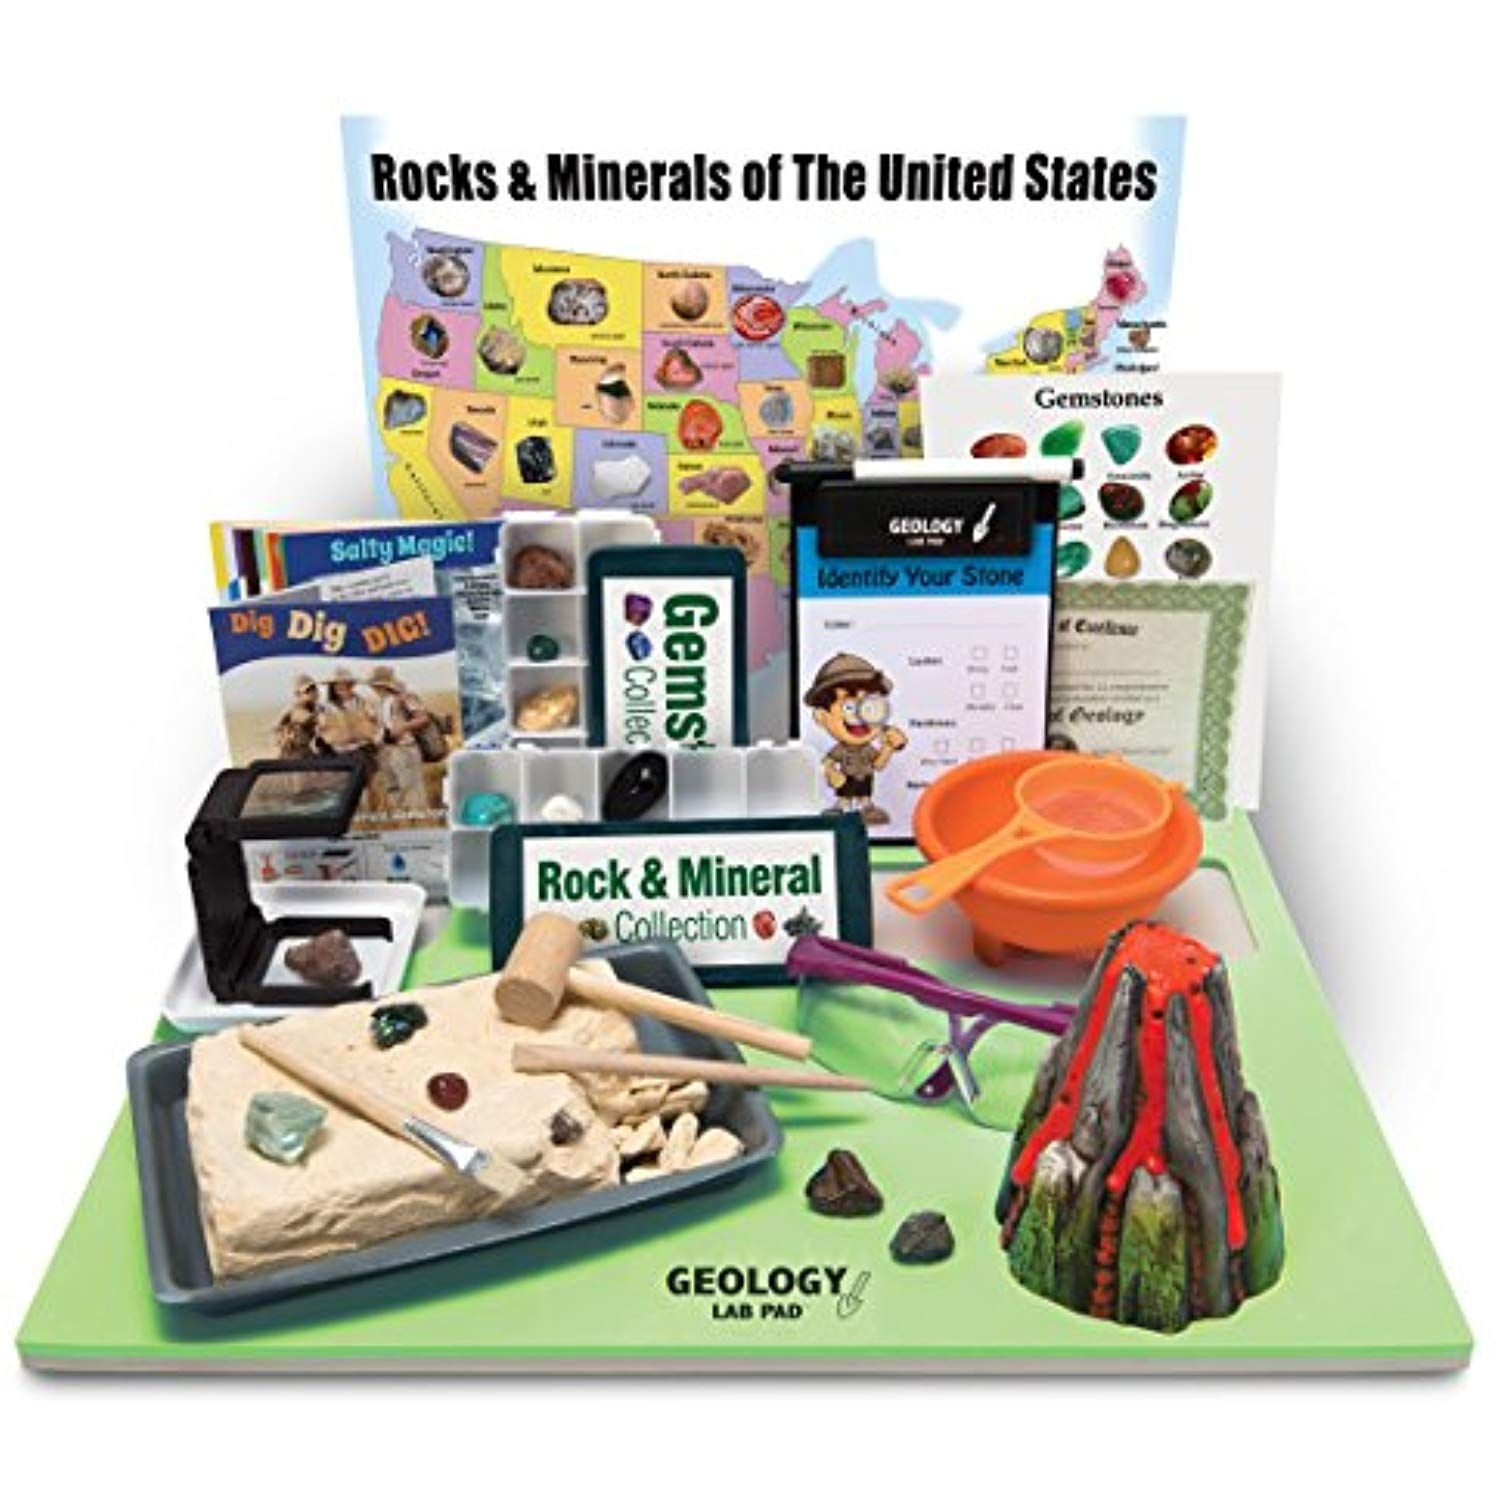 Ben Franklin Toys Geology Lab Pad Science Kit You Can